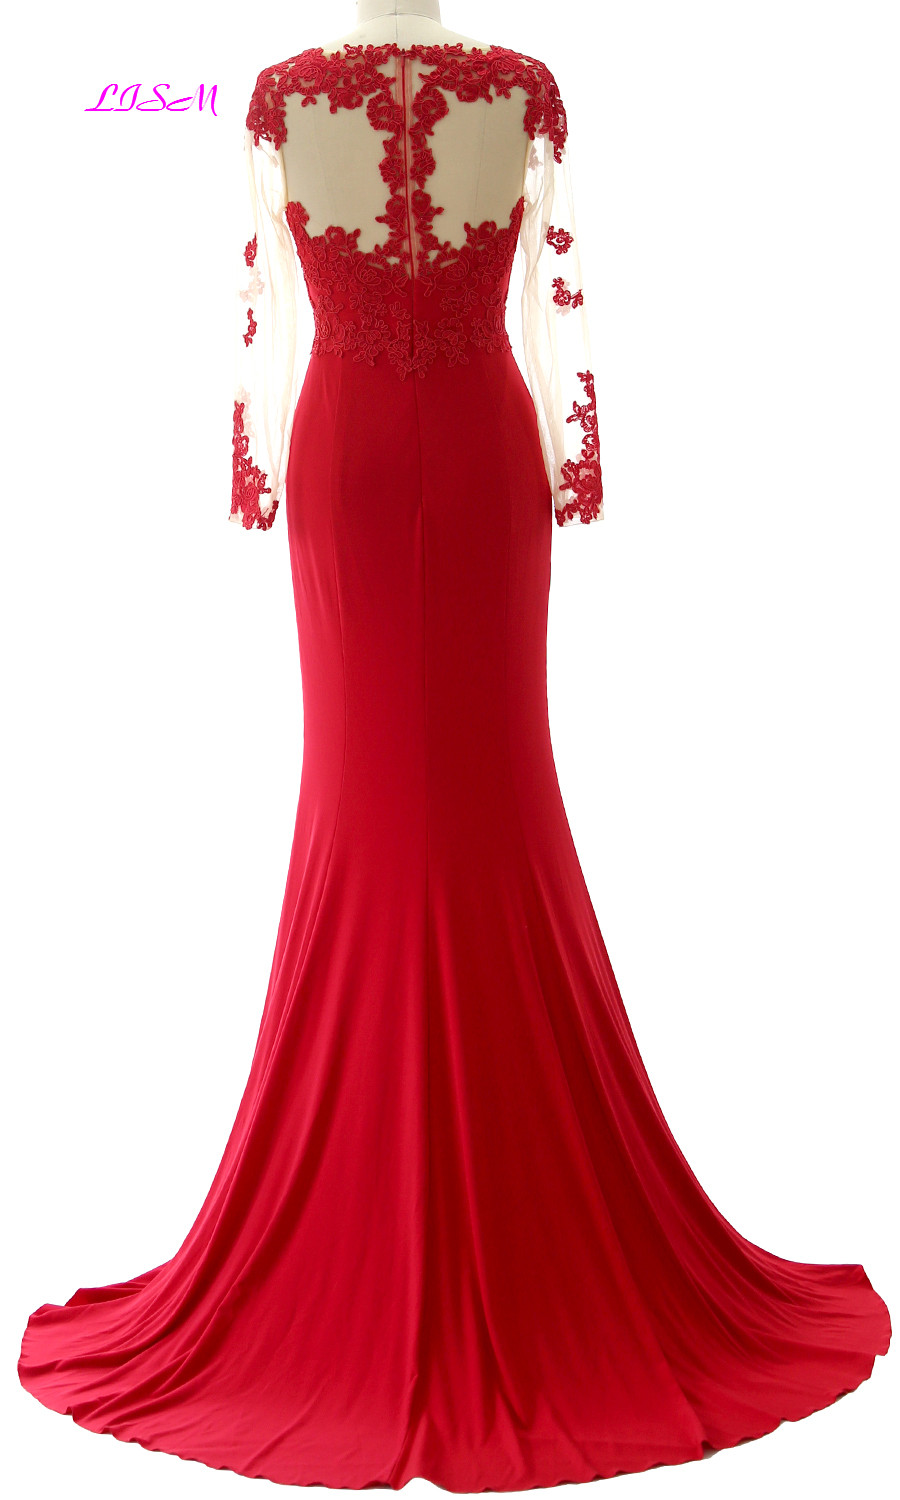 Real Photos Red Appliqued Mermaid Evening Dresses Sheer Backless Long Sleeves Prom Gowns Sweep Train Formal Dress robe de soiree